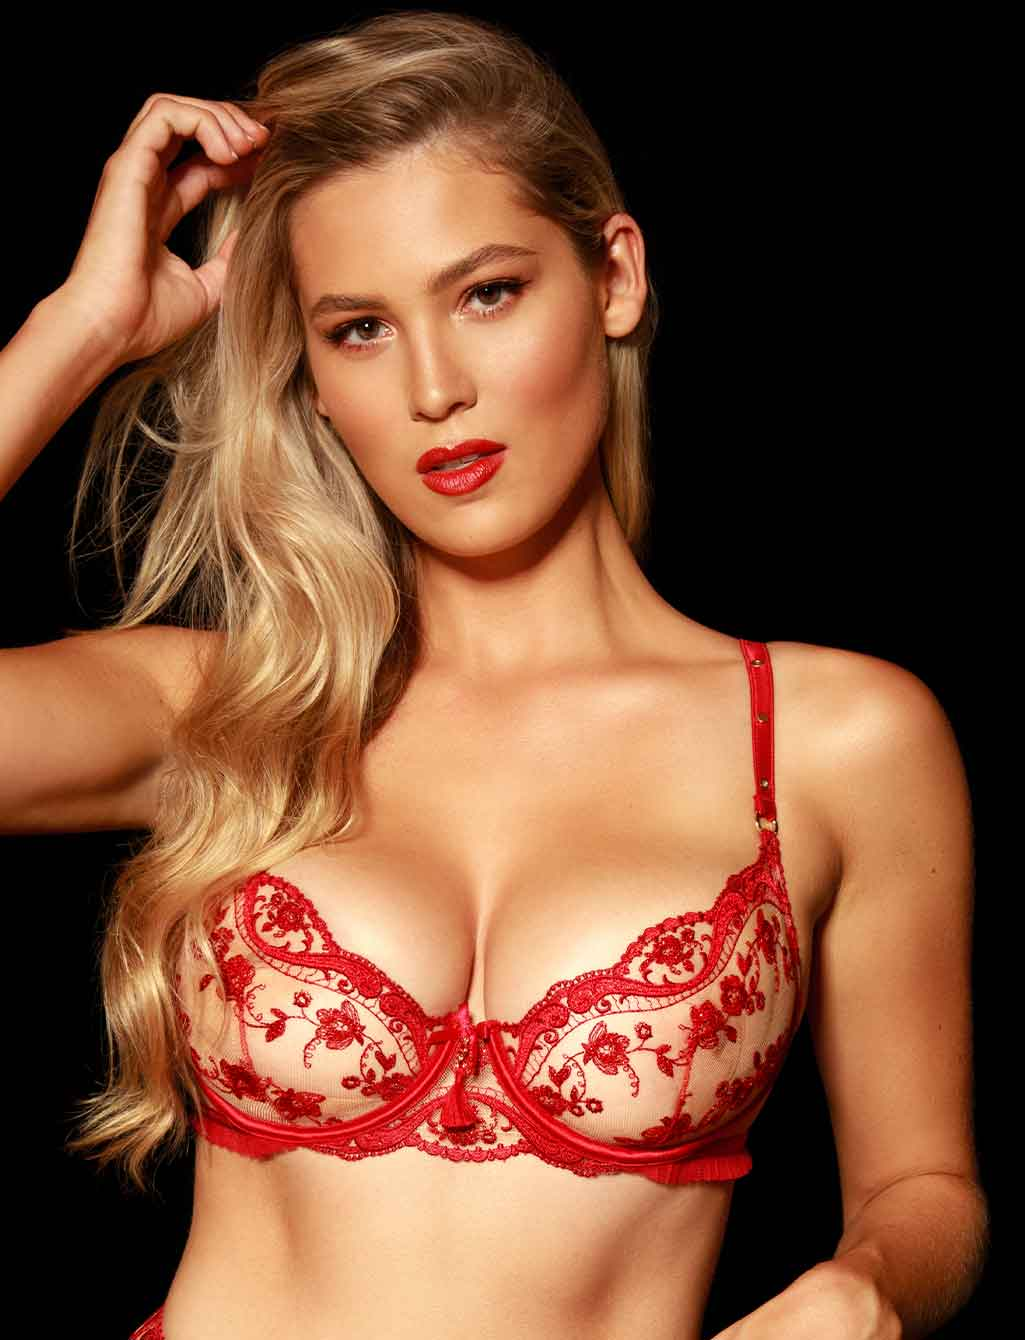 Frida Red Lace Underwire Bra - Shop Lingerie | Honey Birdette